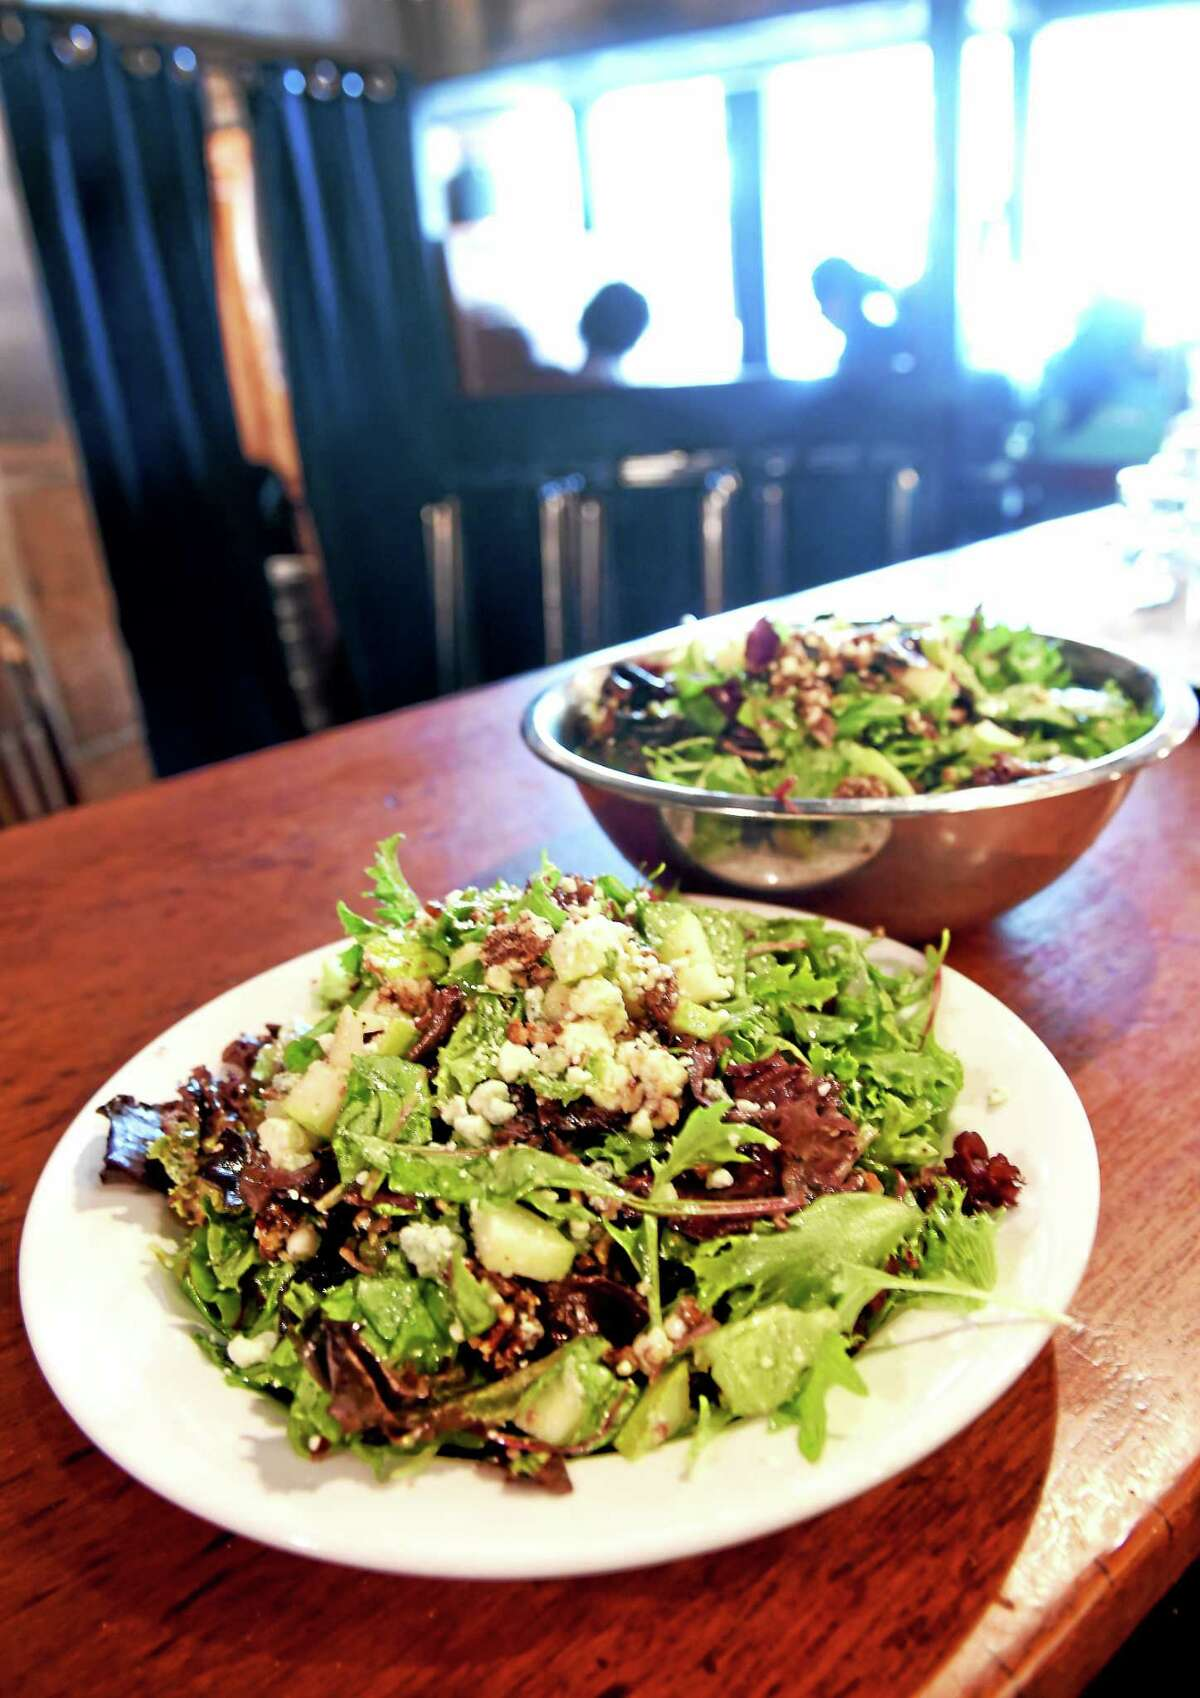 BAR on Crown Street in New Haven features their one and only BAR salad created by Gloria Hoder, the mother of the founder of BAR: mixed greens, caramelized pecans, pears, blue cheese, tossed in oil and vinegar.